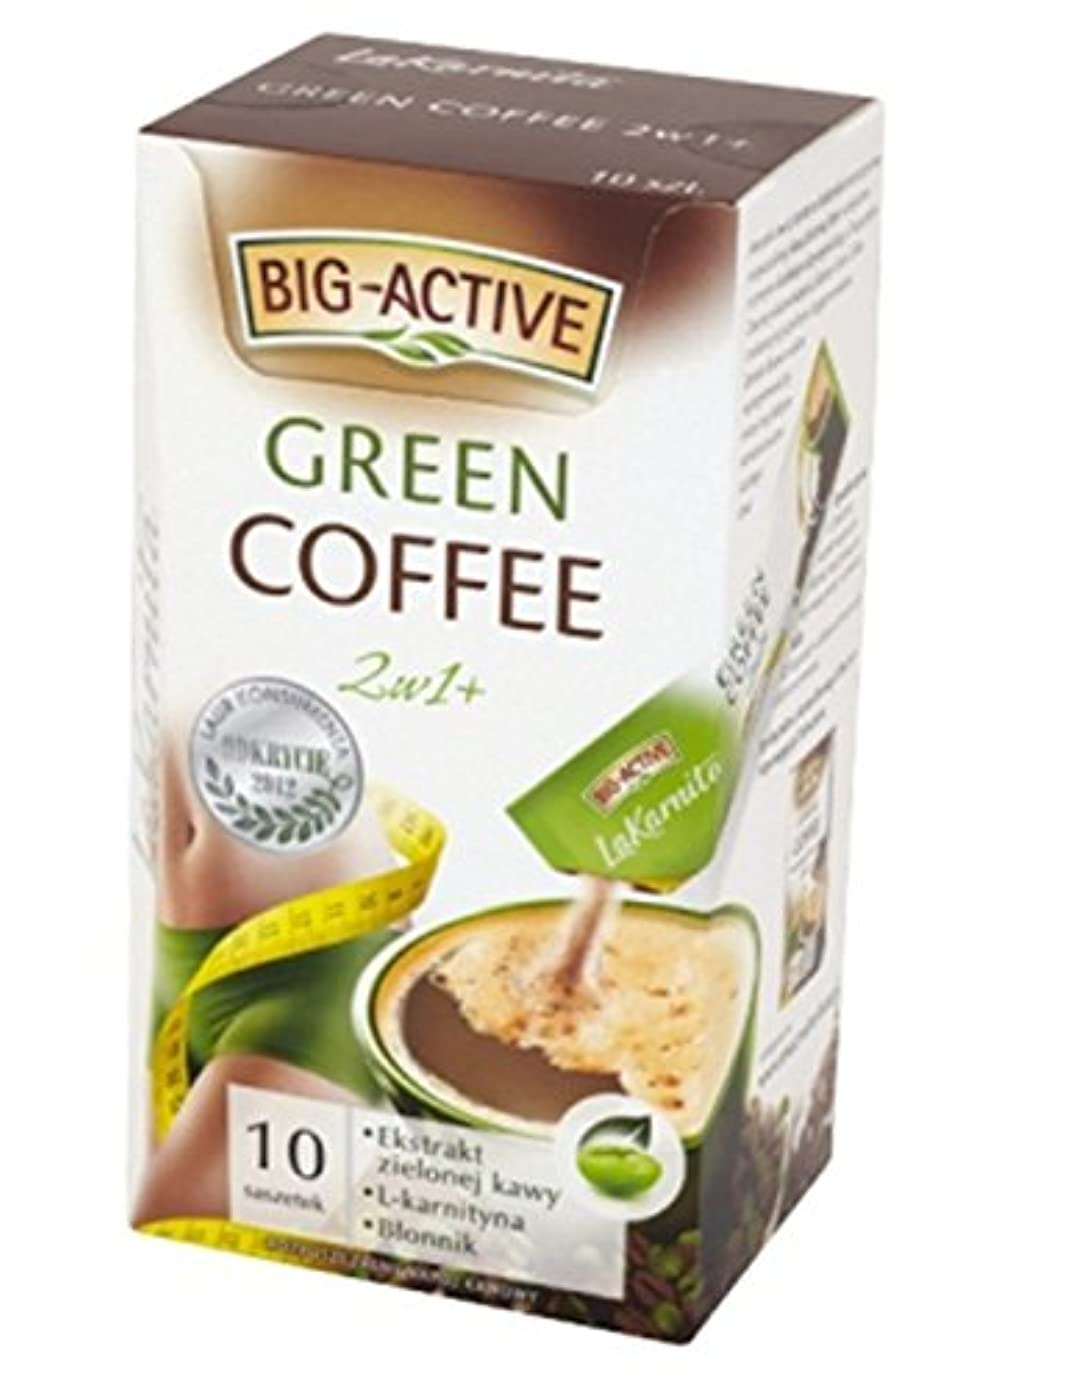 創始者血まみれ虐待スリミン グリー グコーヒー/5 boxes Big Active La Karnita Green Coffee Slimming Sachet 2 IN 1